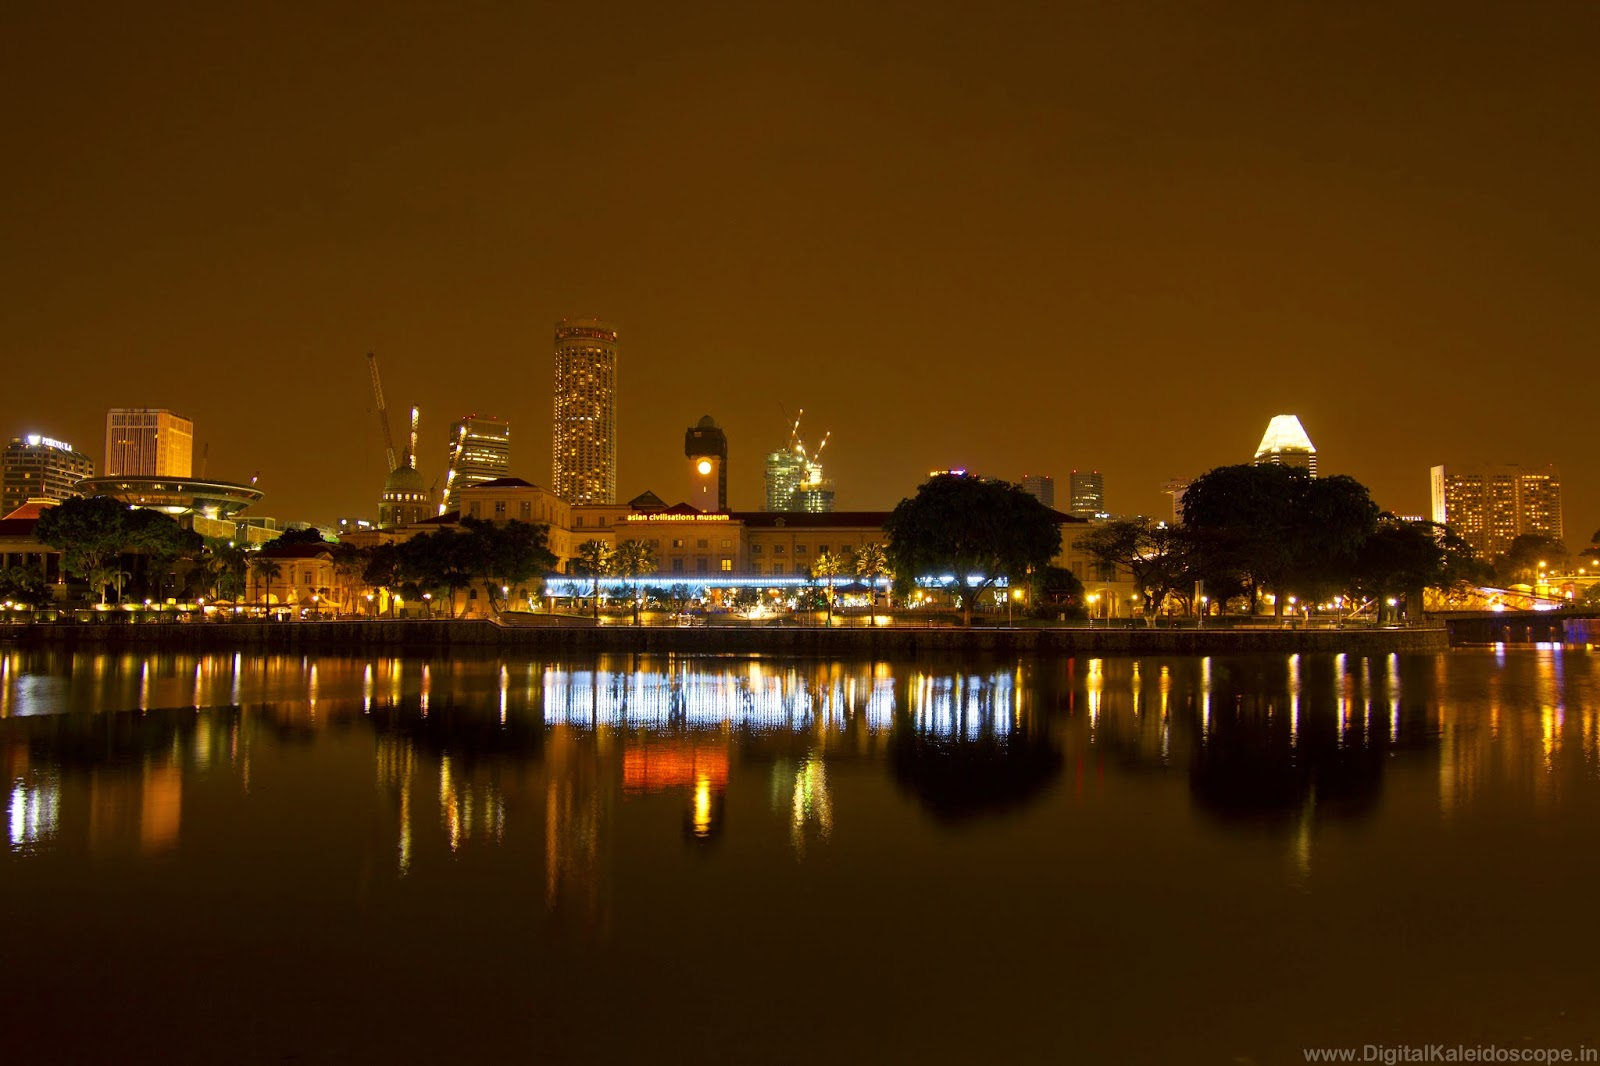 Asian Civilizations Museum Singapore,Singapore Night Photography